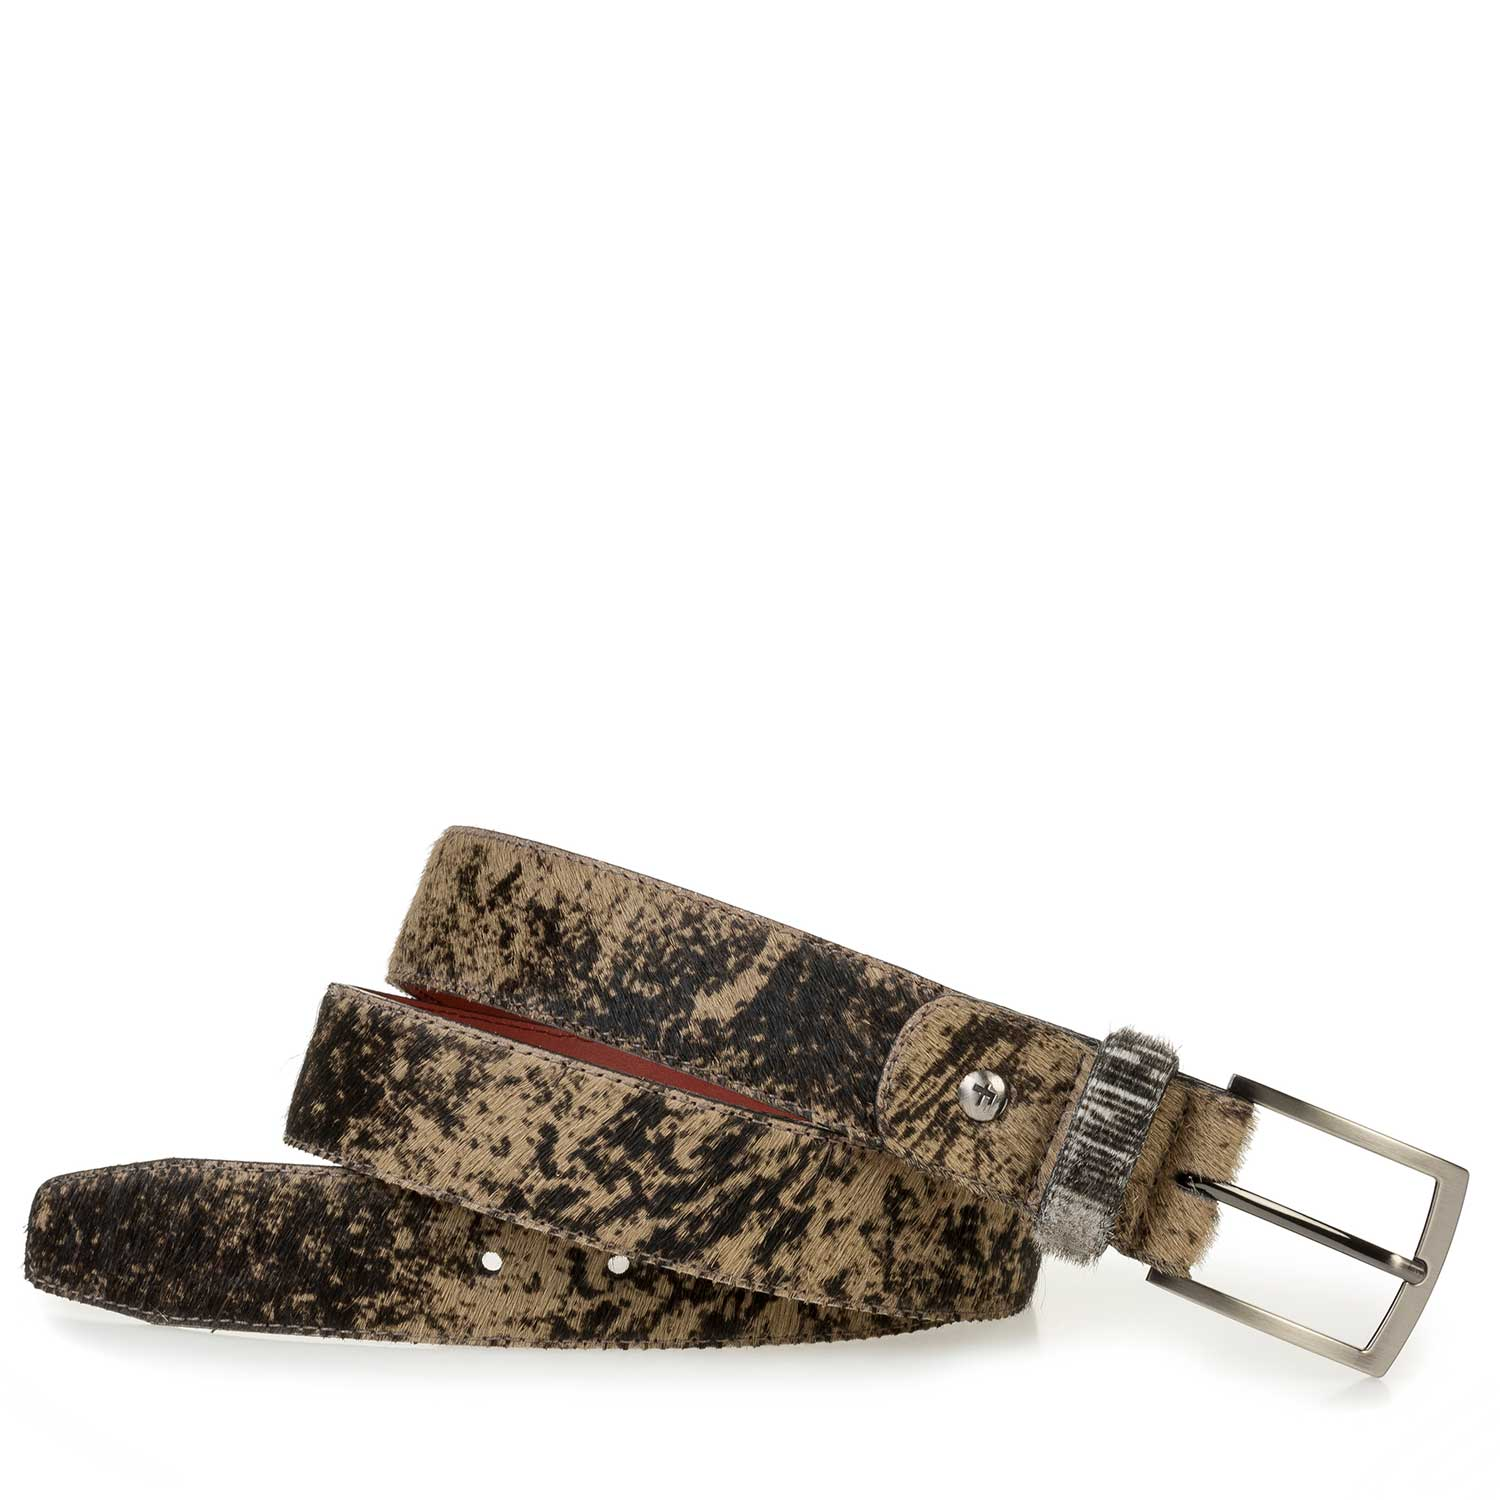 75188/34 - Brown pony hair belt with a print